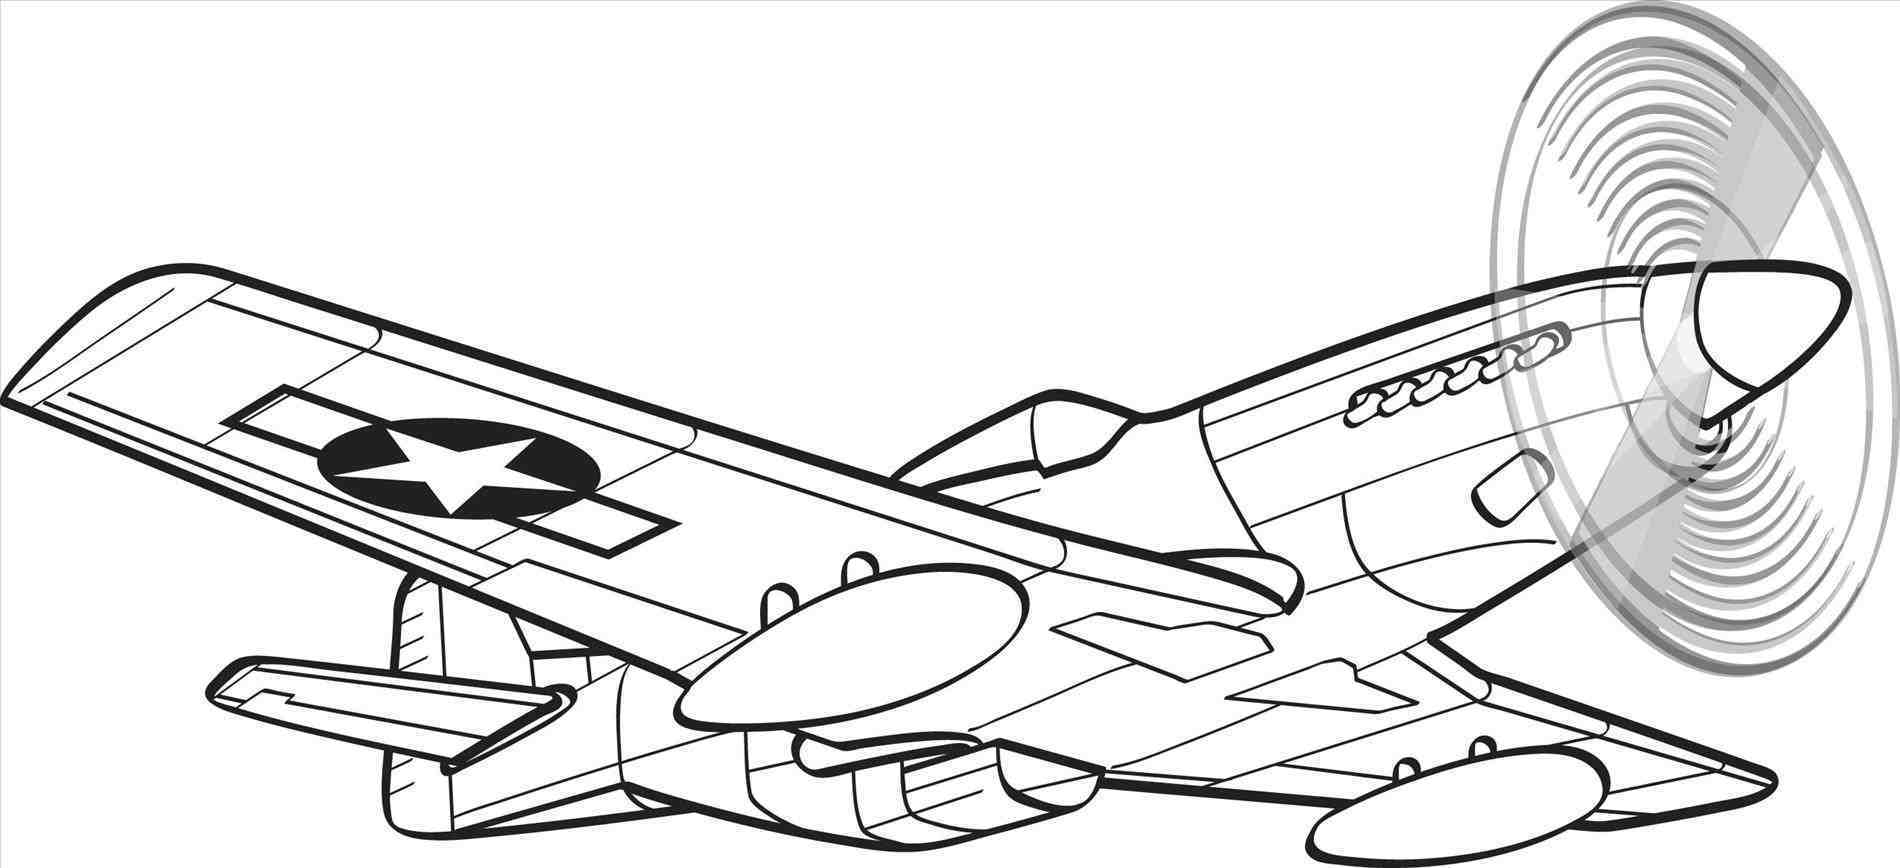 Drawing at getdrawingscom for. Biplane clipart line